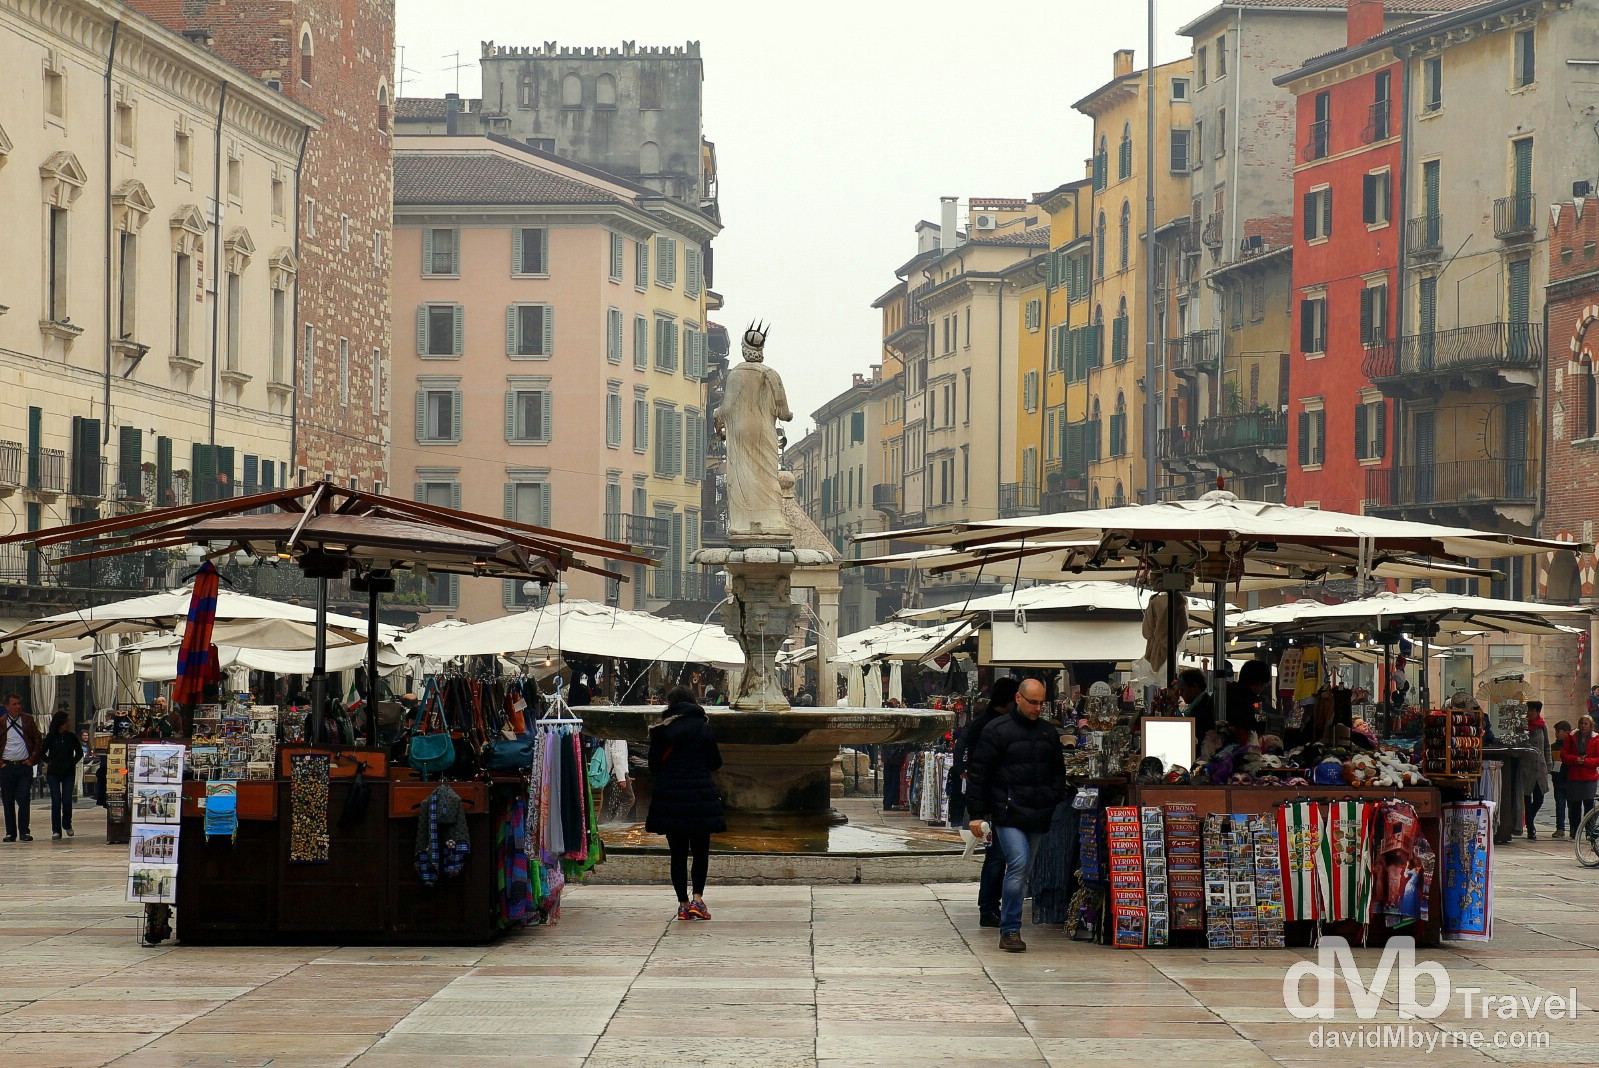 Stalls on Piazza Erbe, Verona, Italy. March 17, 2014.